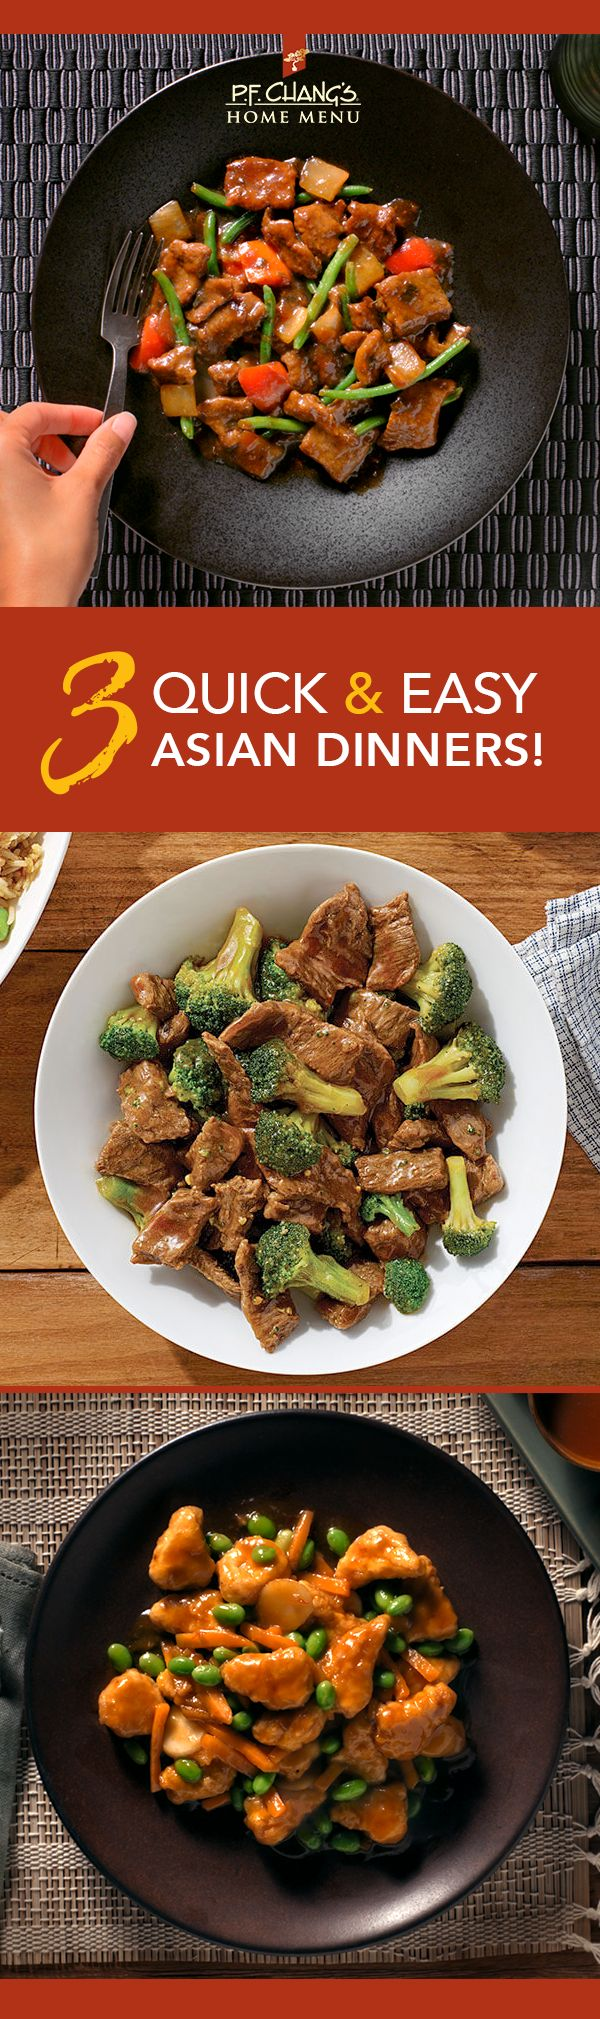 Shake up weeknight family meals with quick and easy Asian dinners from P.F. Chang's Home Menu like Mongolian Beef, Beef & Broccoli, and Orange Chicken. Look for them in the frozen food aisle!